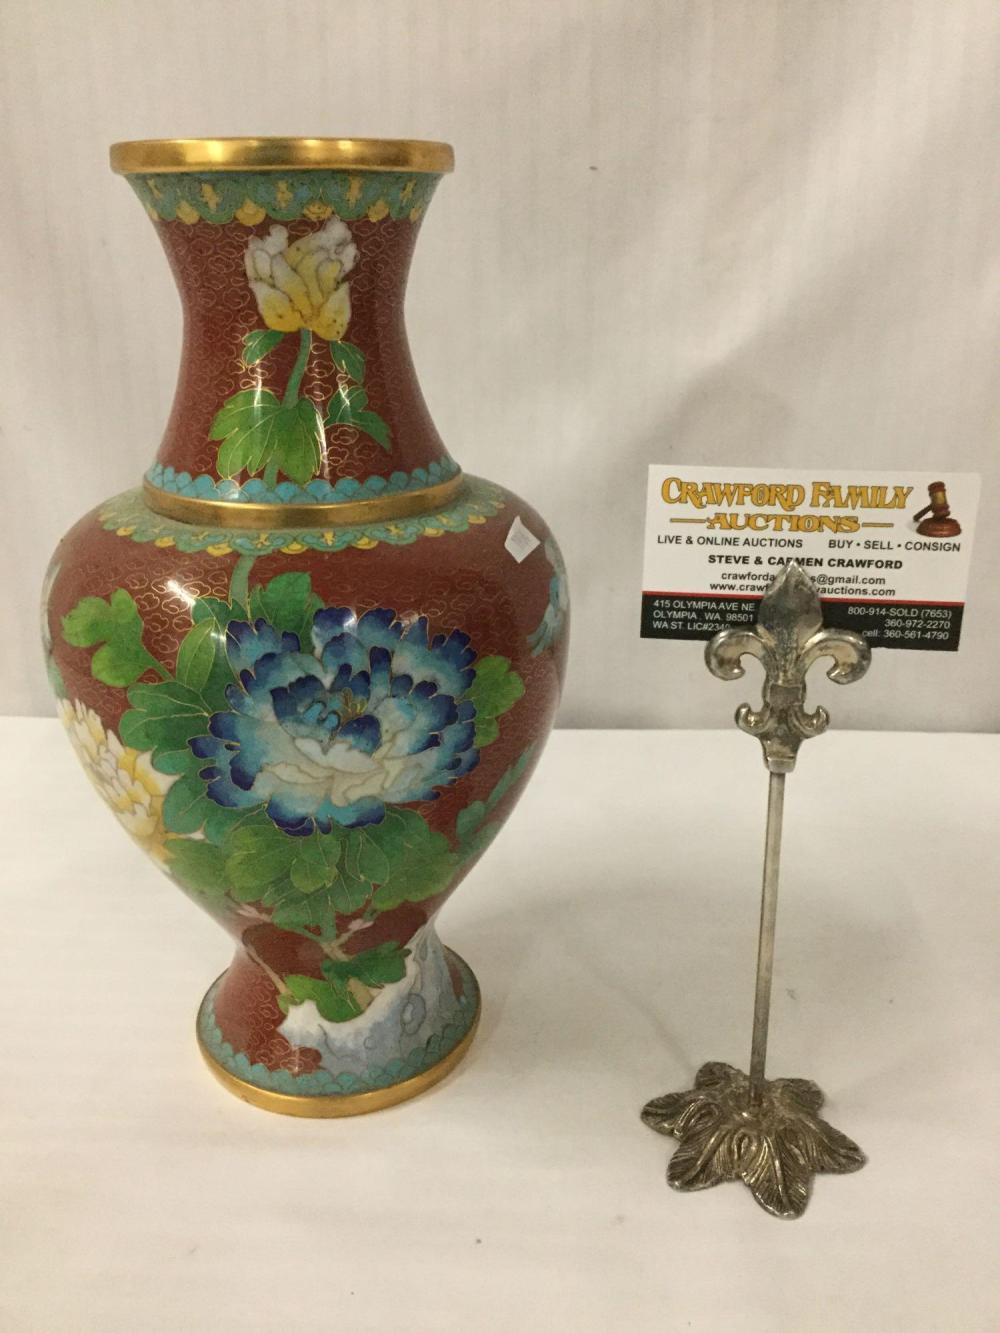 Vintage Chinese cloisonne vase with brass trim and overlay - bird, flower and butterfly design